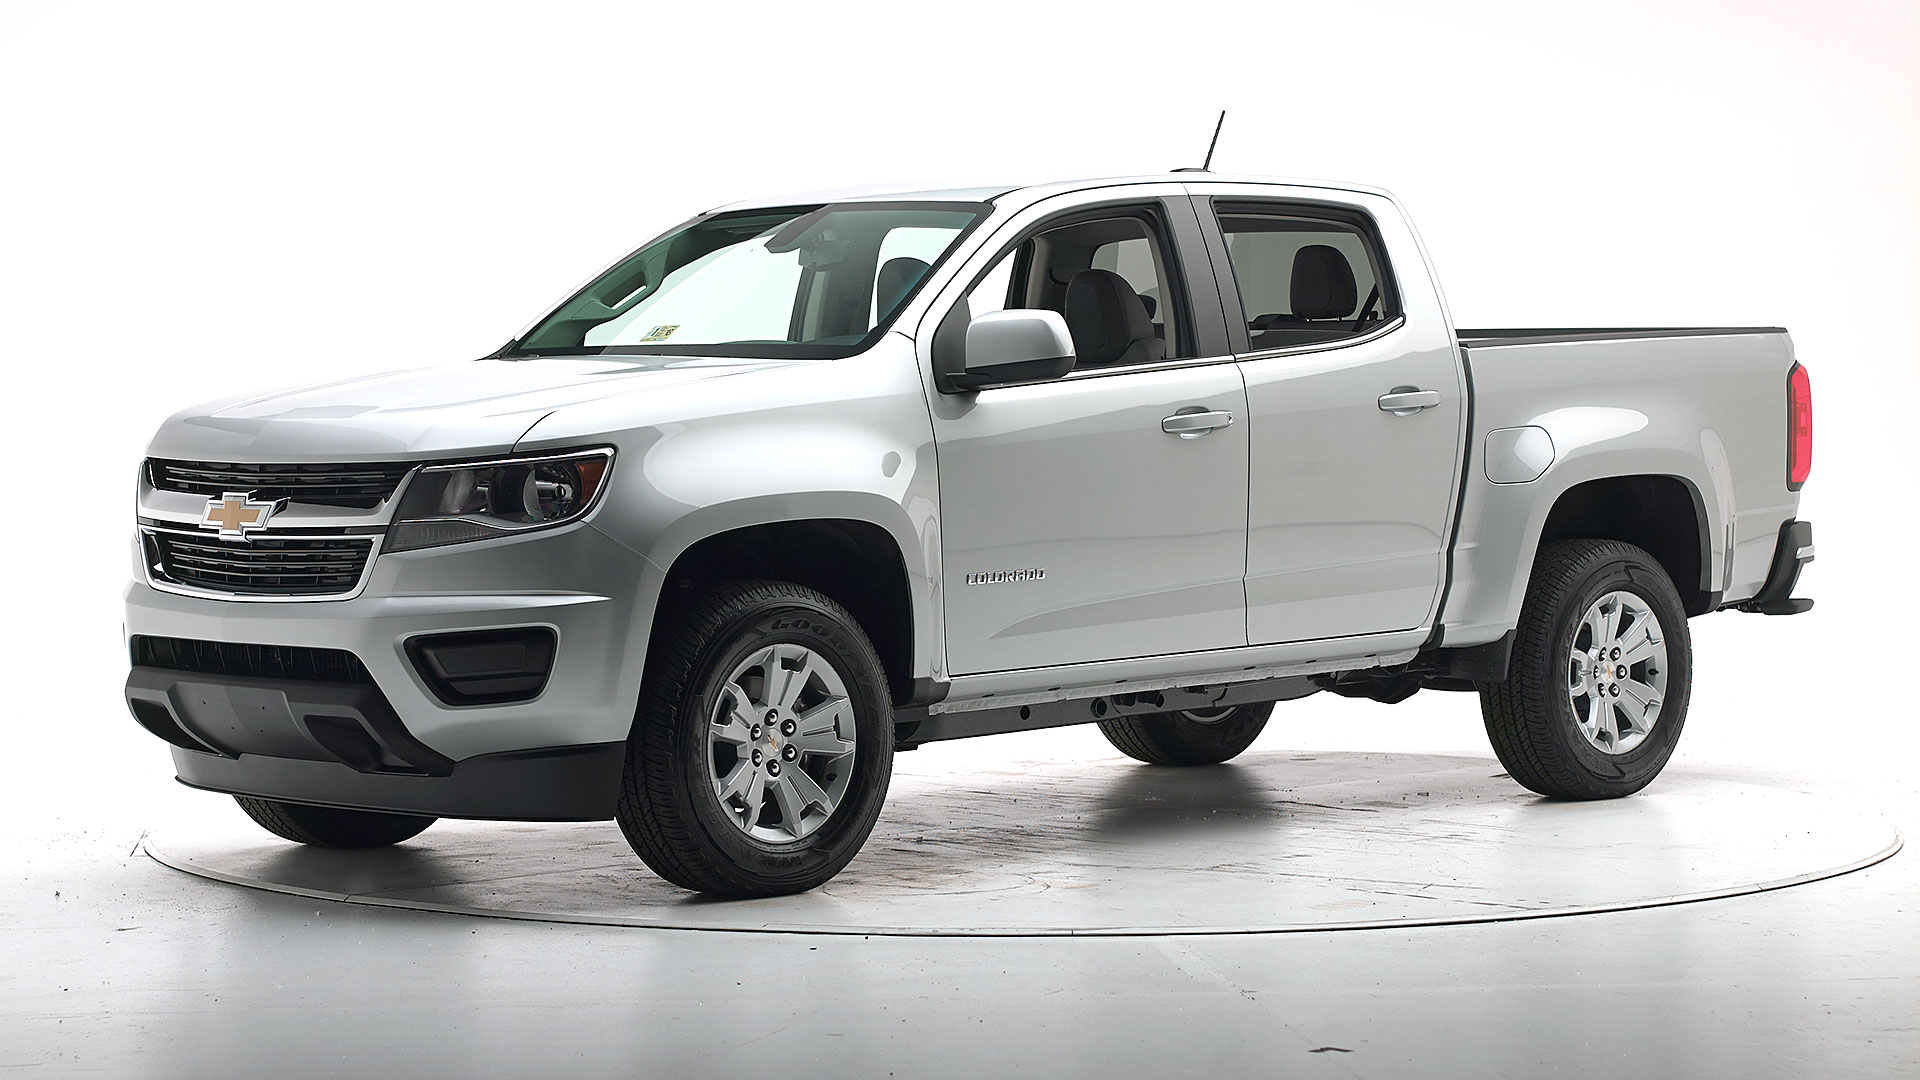 2018 Chevrolet Colorado Crew cab pickup